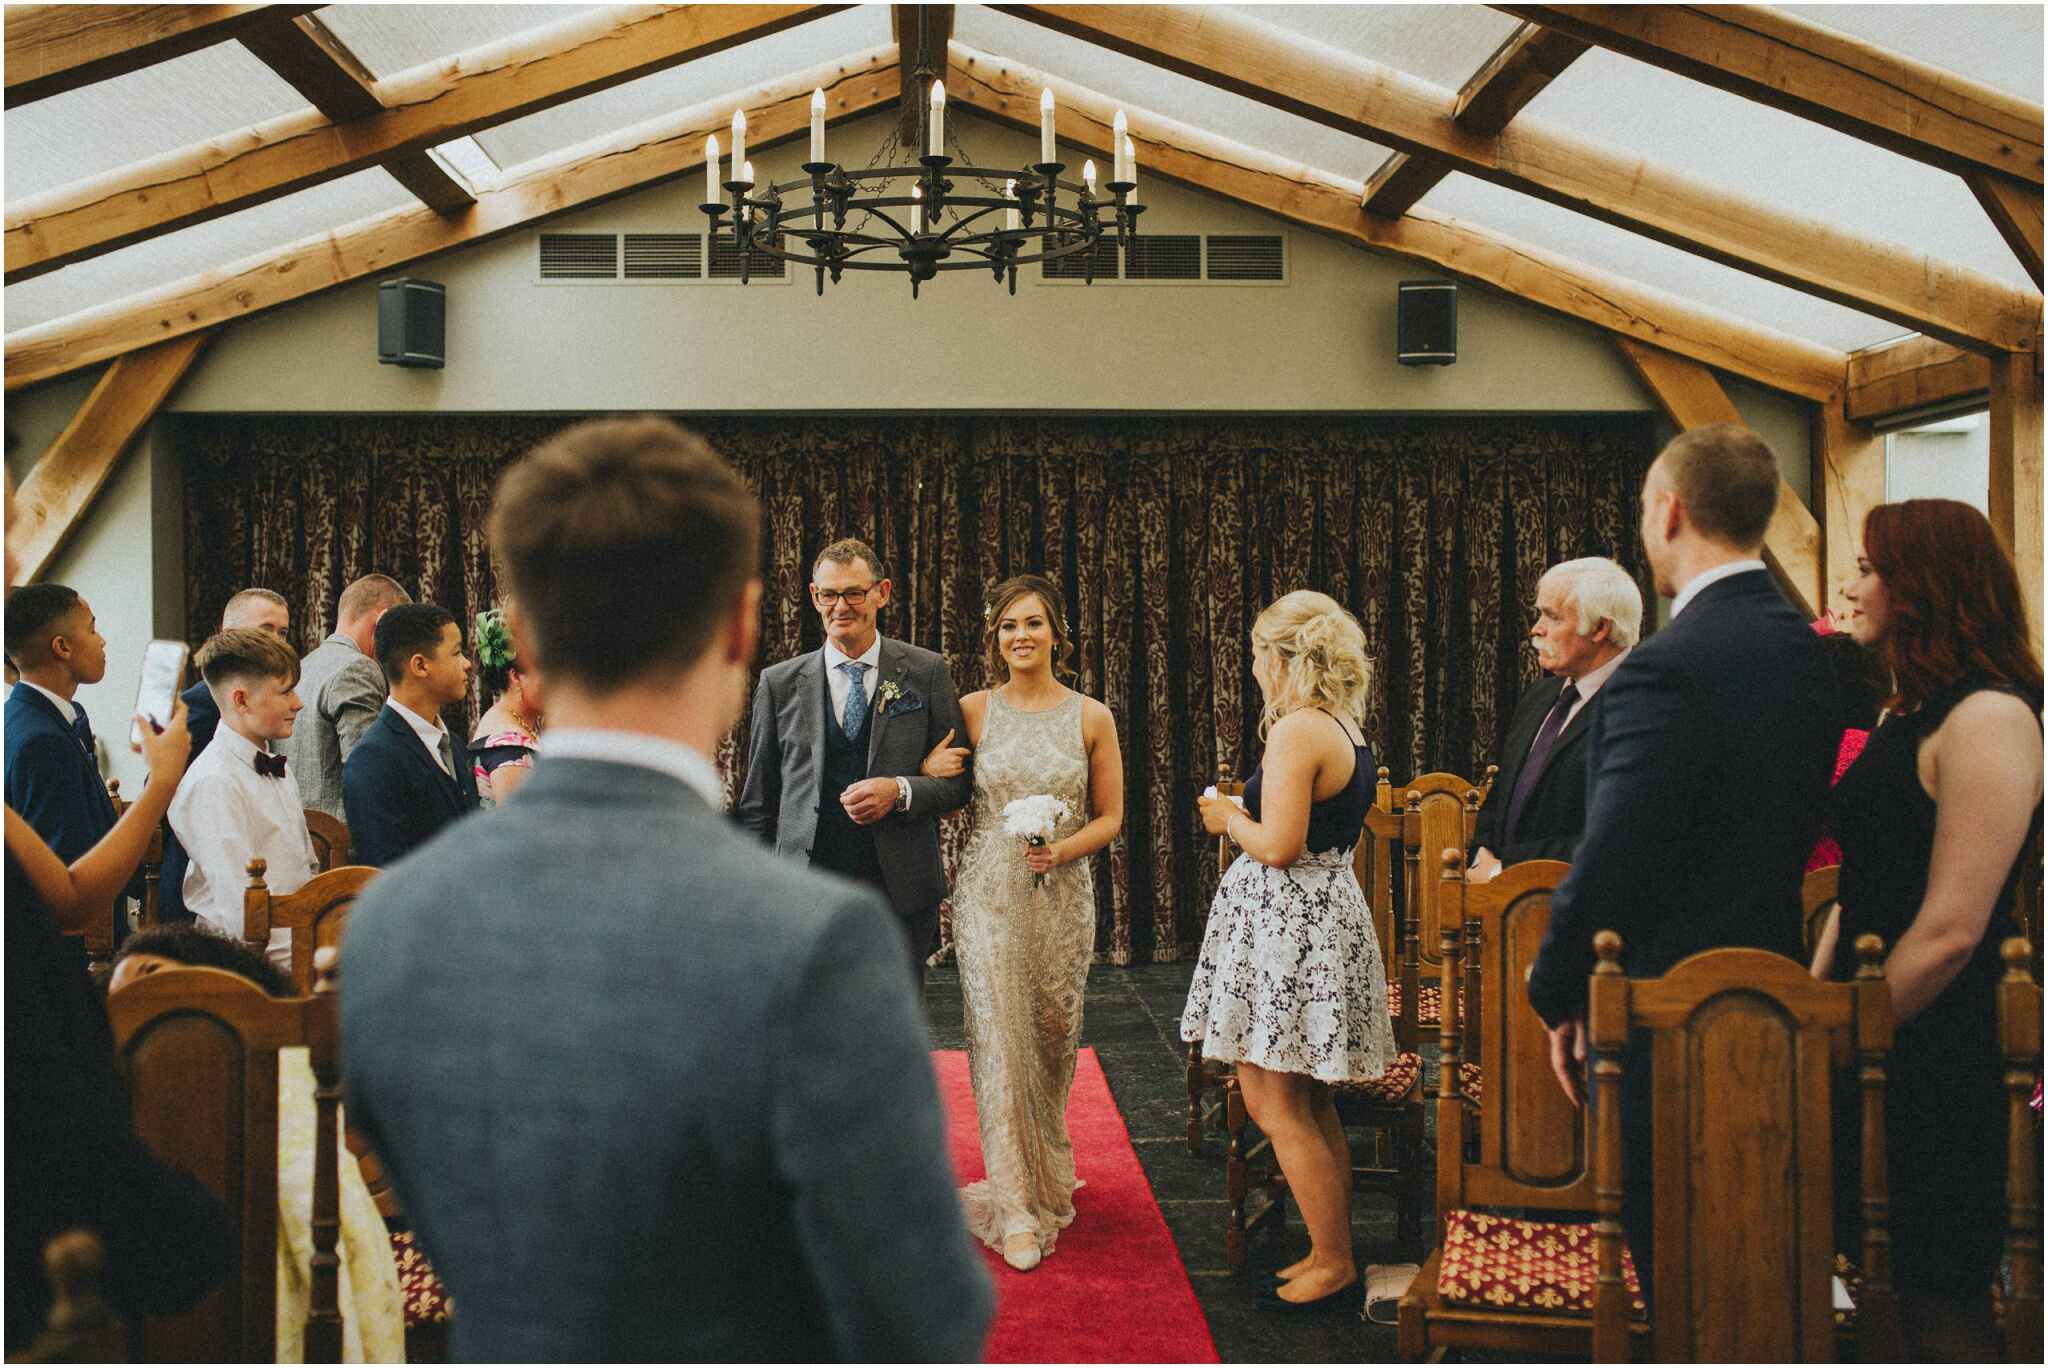 Sharon + Rob – Barberstown Castle 44